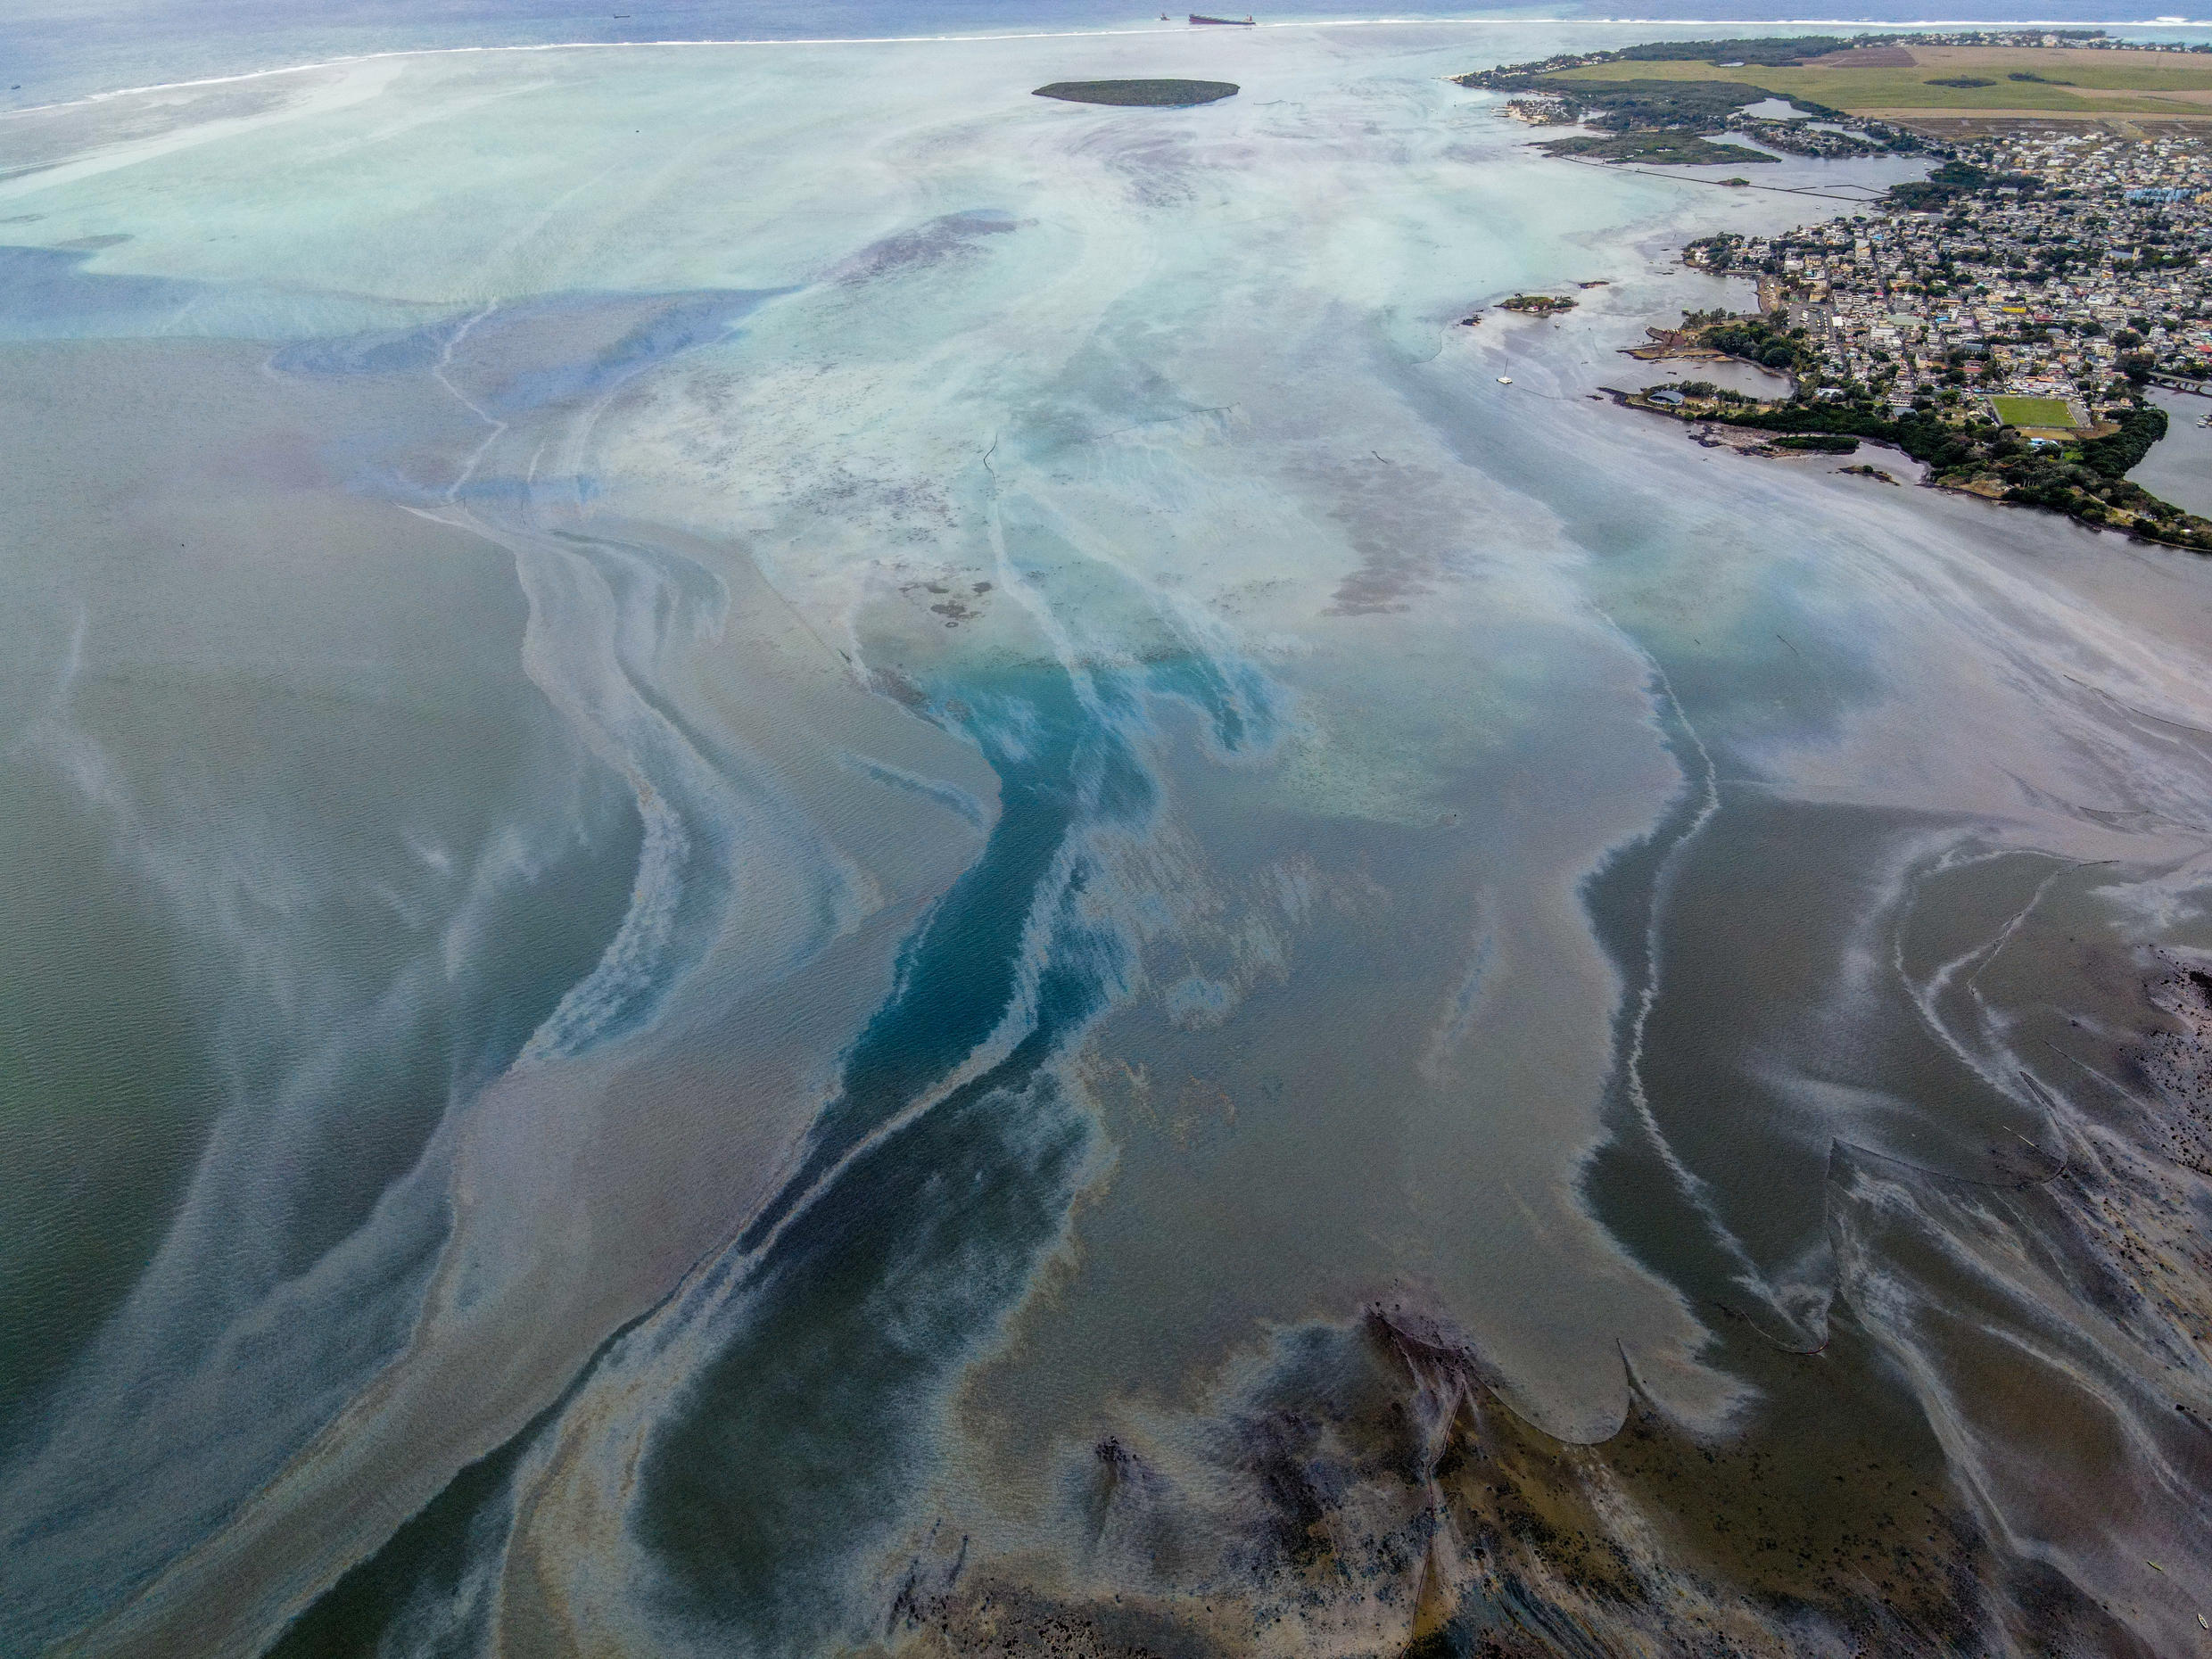 The black oil spill from the Wakashio ship visibly moving throughout the turquoise lagoon from south-east to eastern Mauritius.